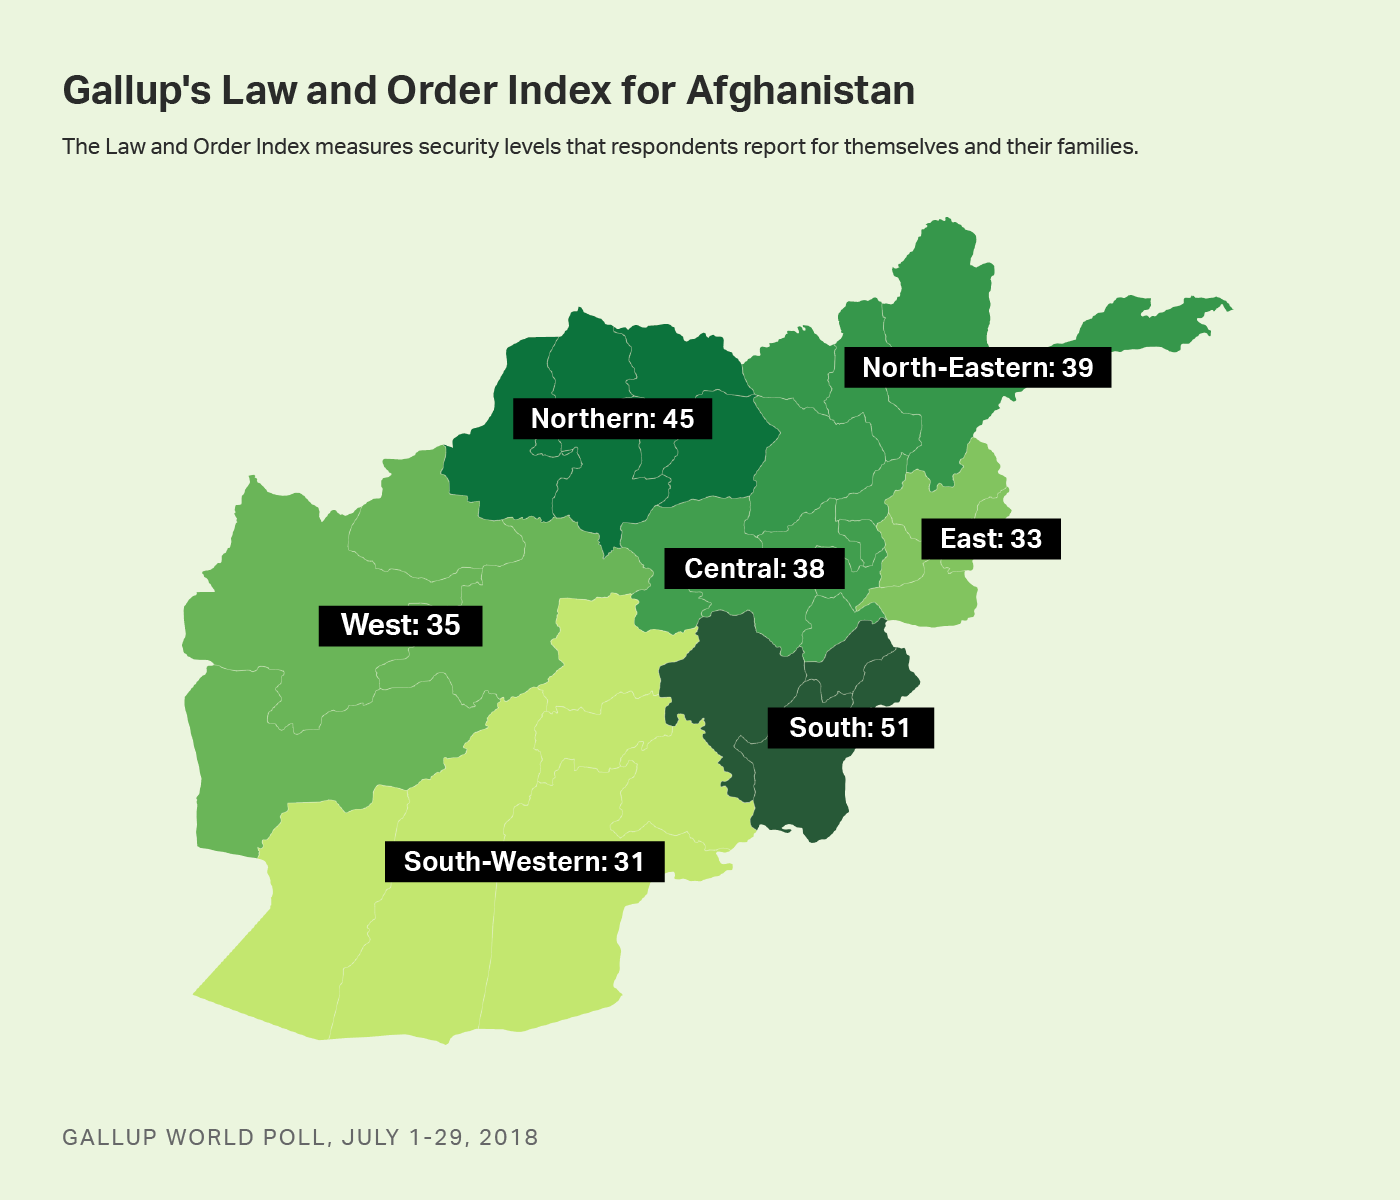 Law and Order Index scores in Afghanistan by region.